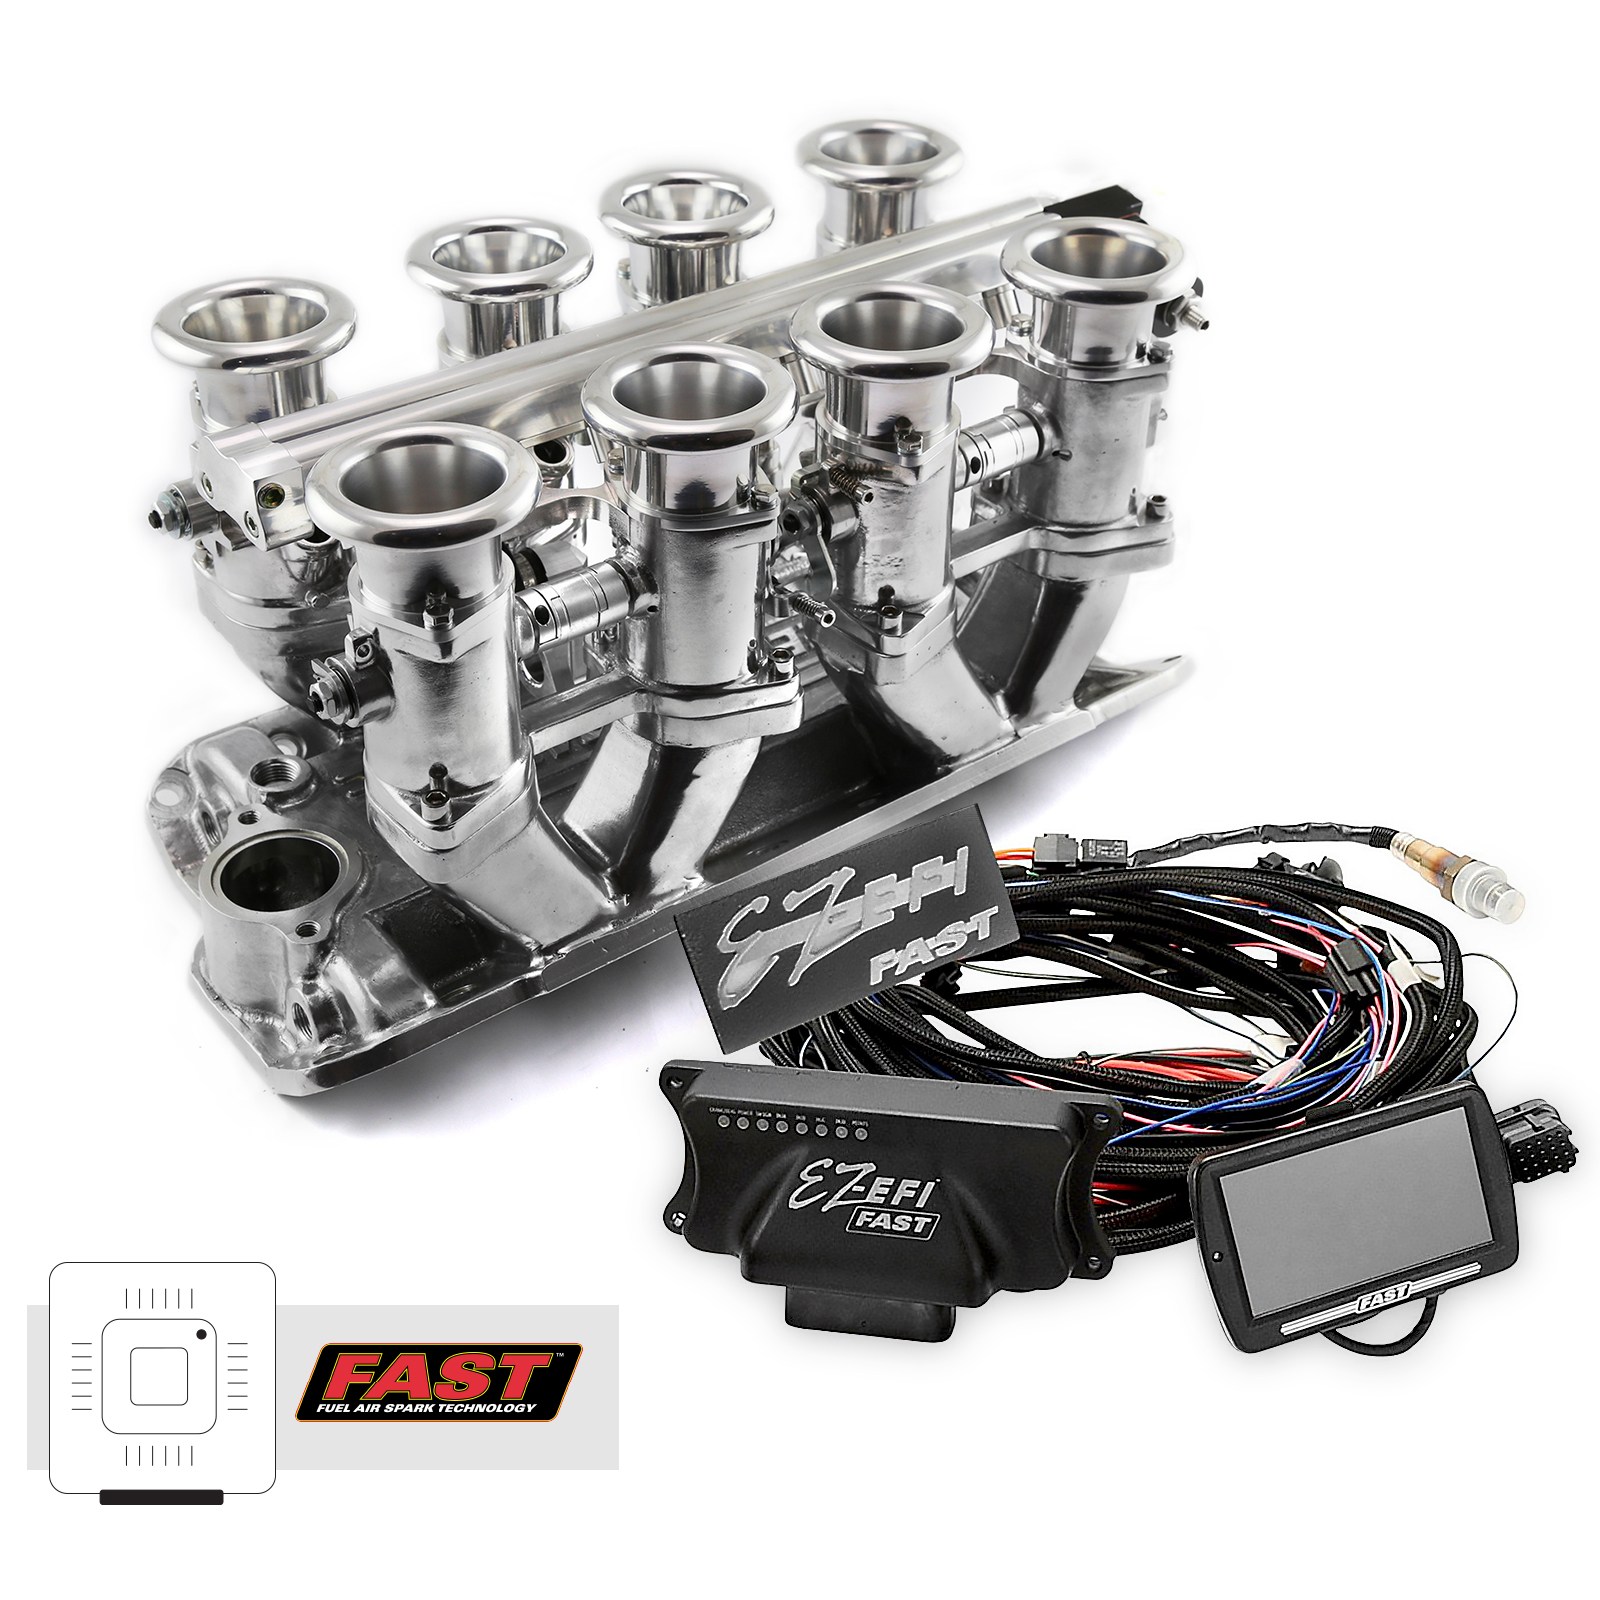 Chevy SBC 350 Downdraft + FAST EZ-EFI 2.0 Fuel Injection System - Polished